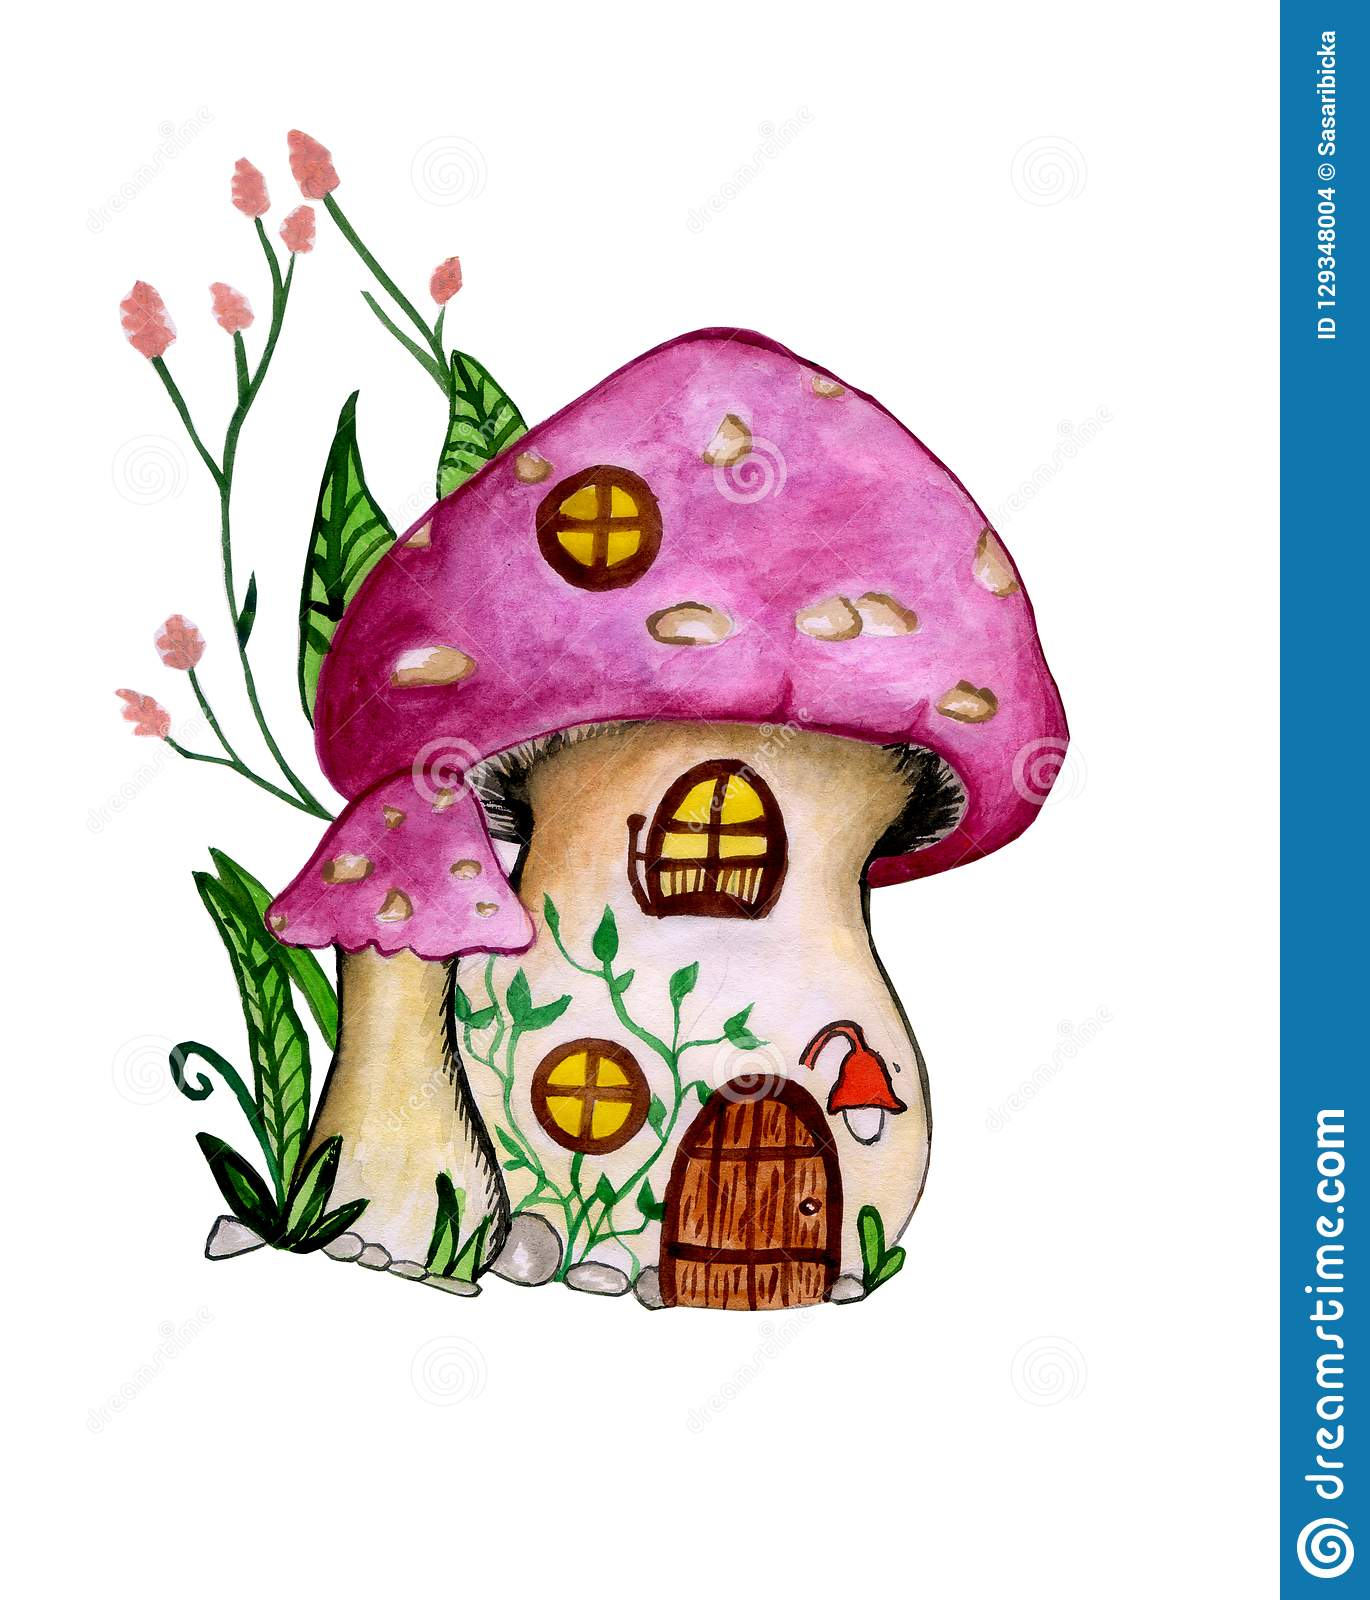 Gnome House Watercolor Illustration Hand-painted Cute Childish Cartoon Fantasy Fairytale